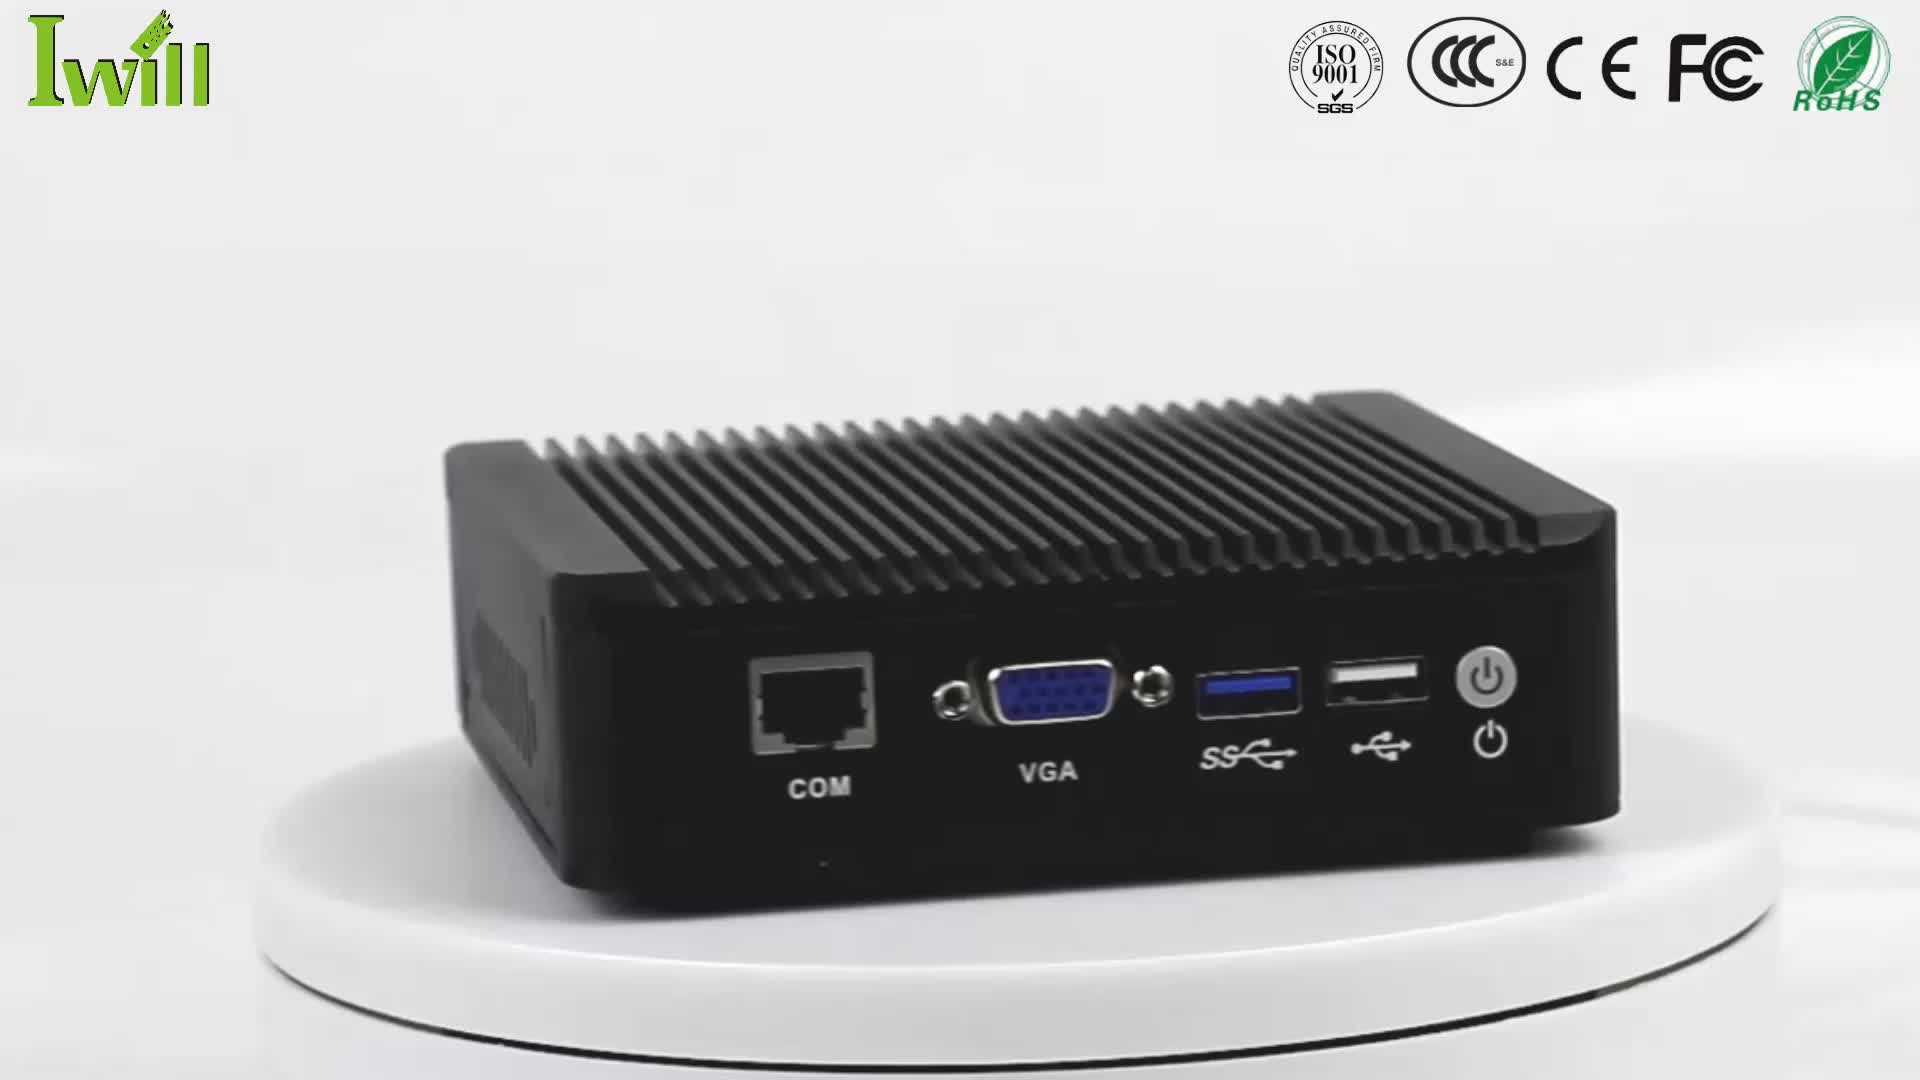 pfSense Firewall Barebone 4 Ethernet Ports Mini PC Router